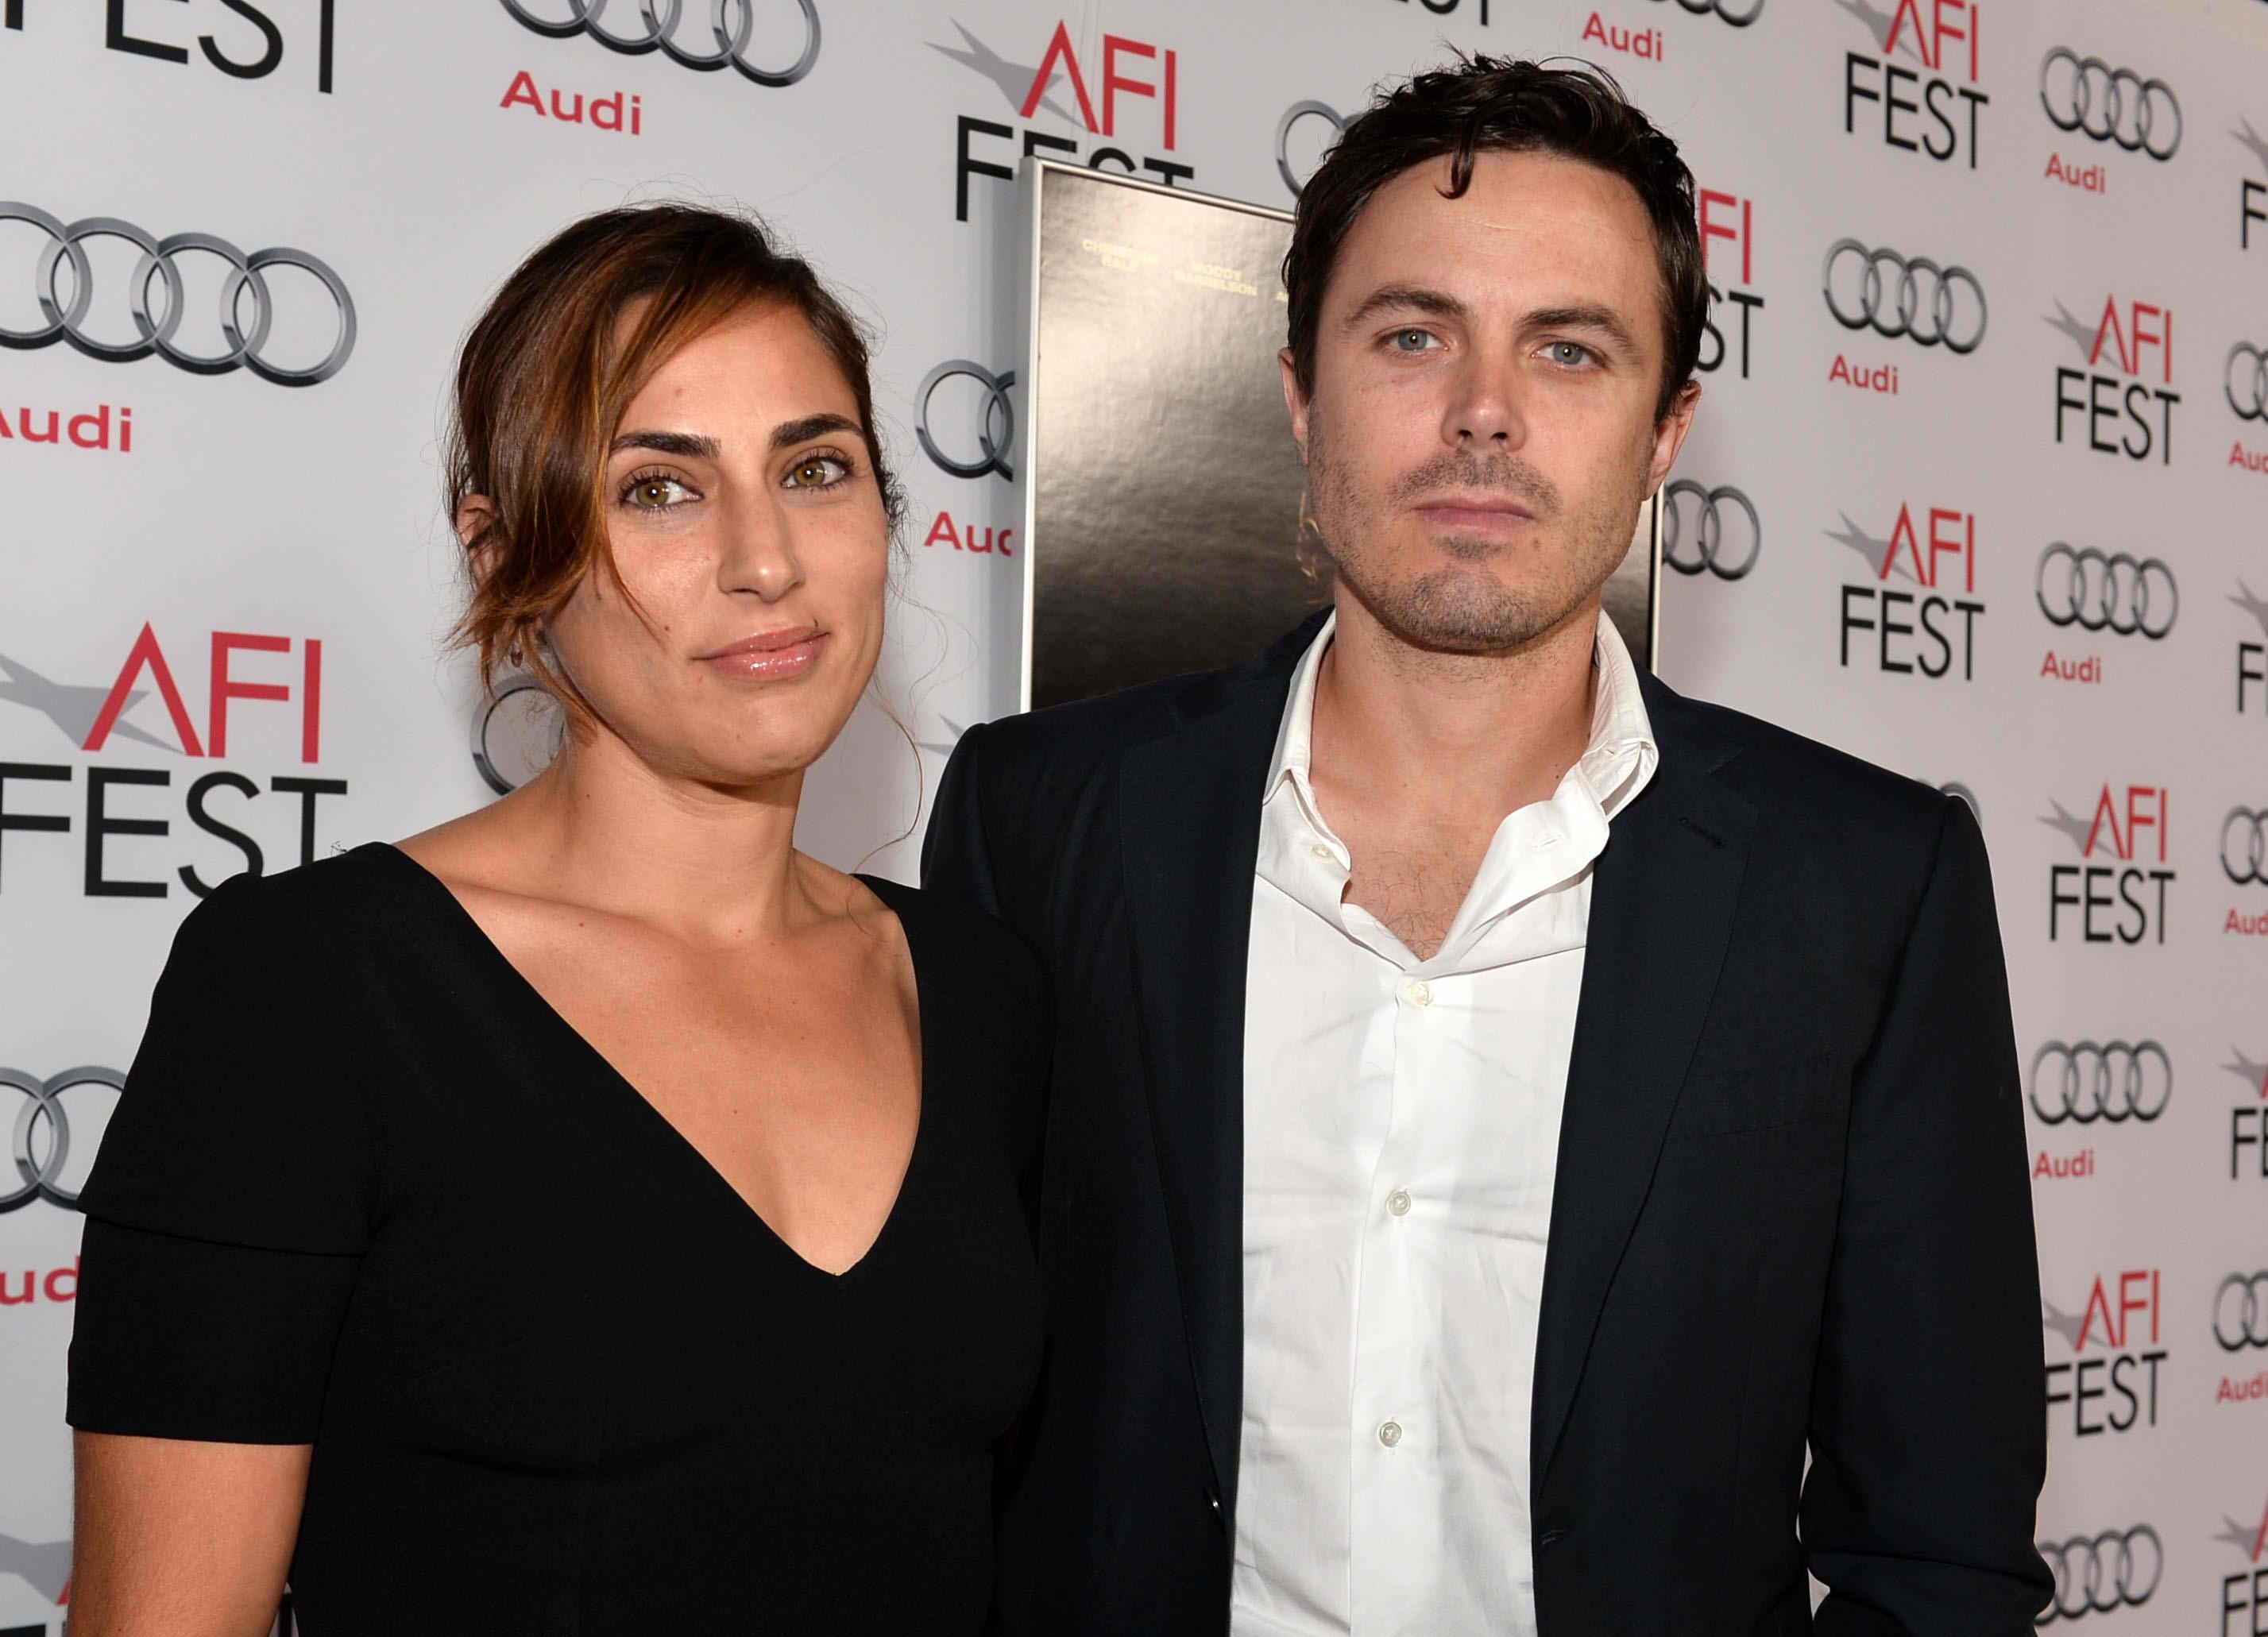 Joaquin Phoenix's Sister Files for Divorce from Ben Affleck's Brother